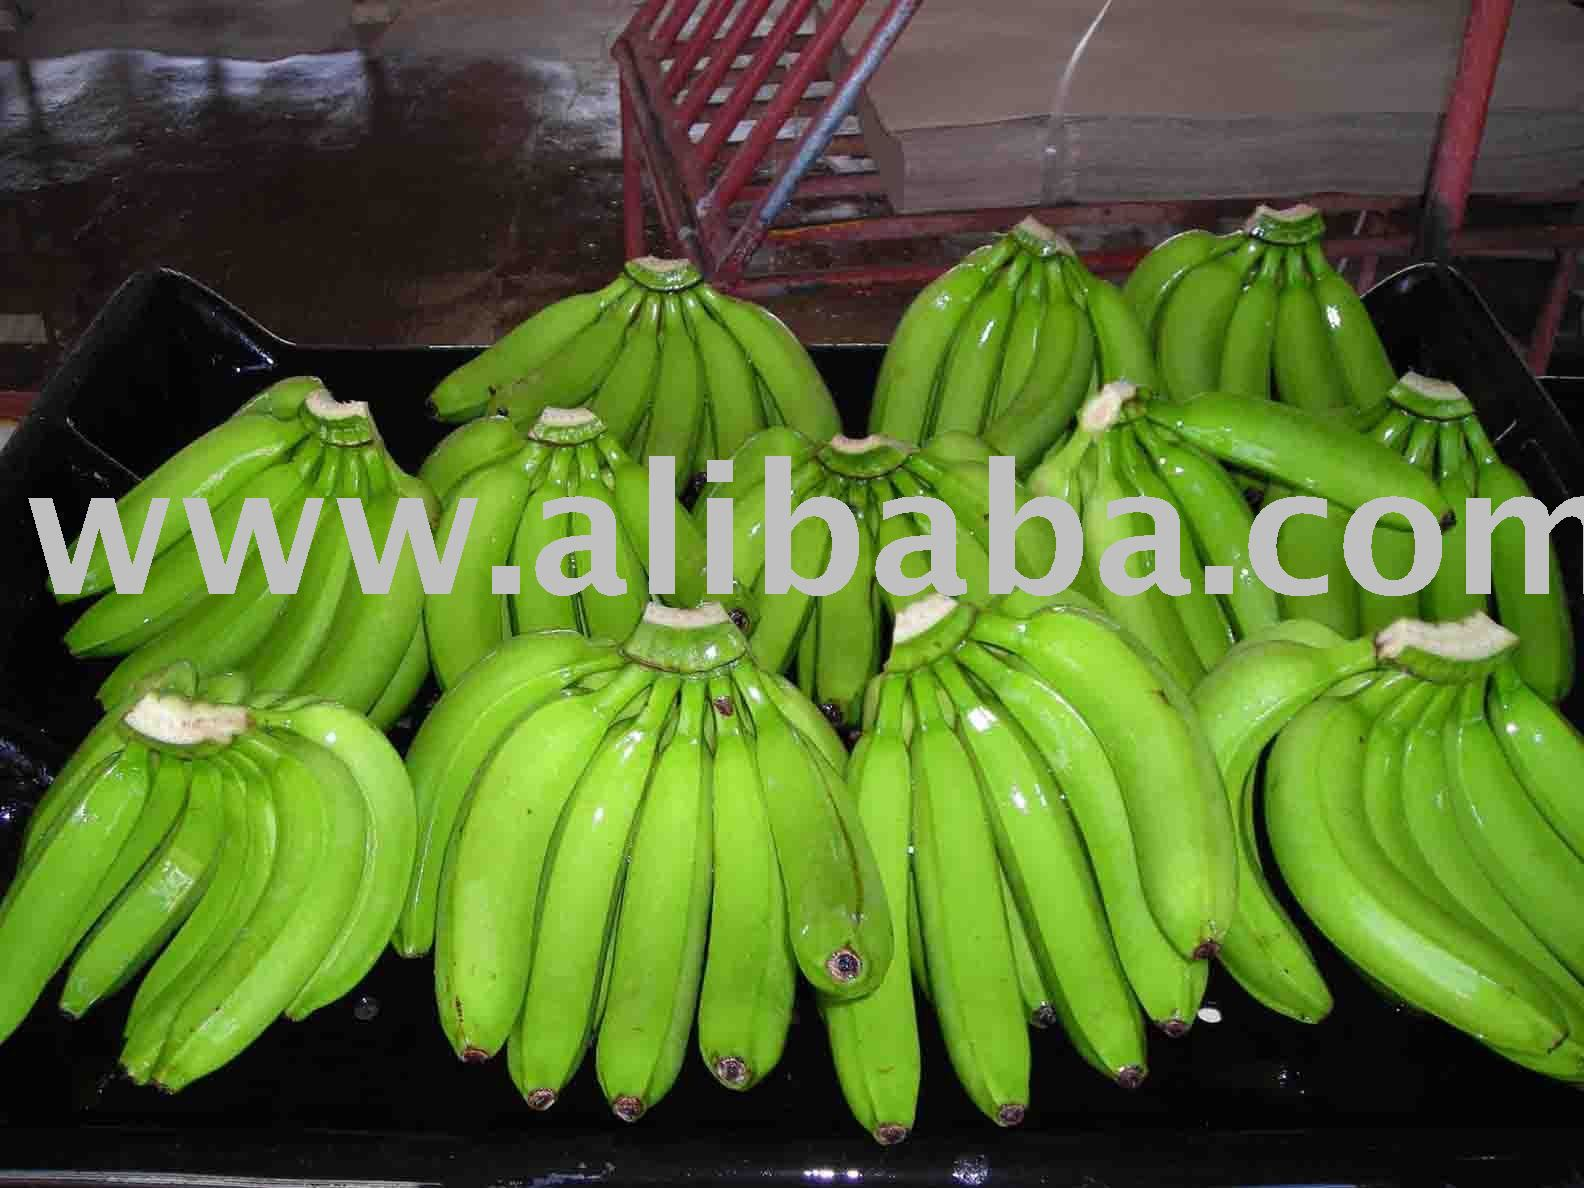 FRESH CAVENDISH BANANAS FOR SALE